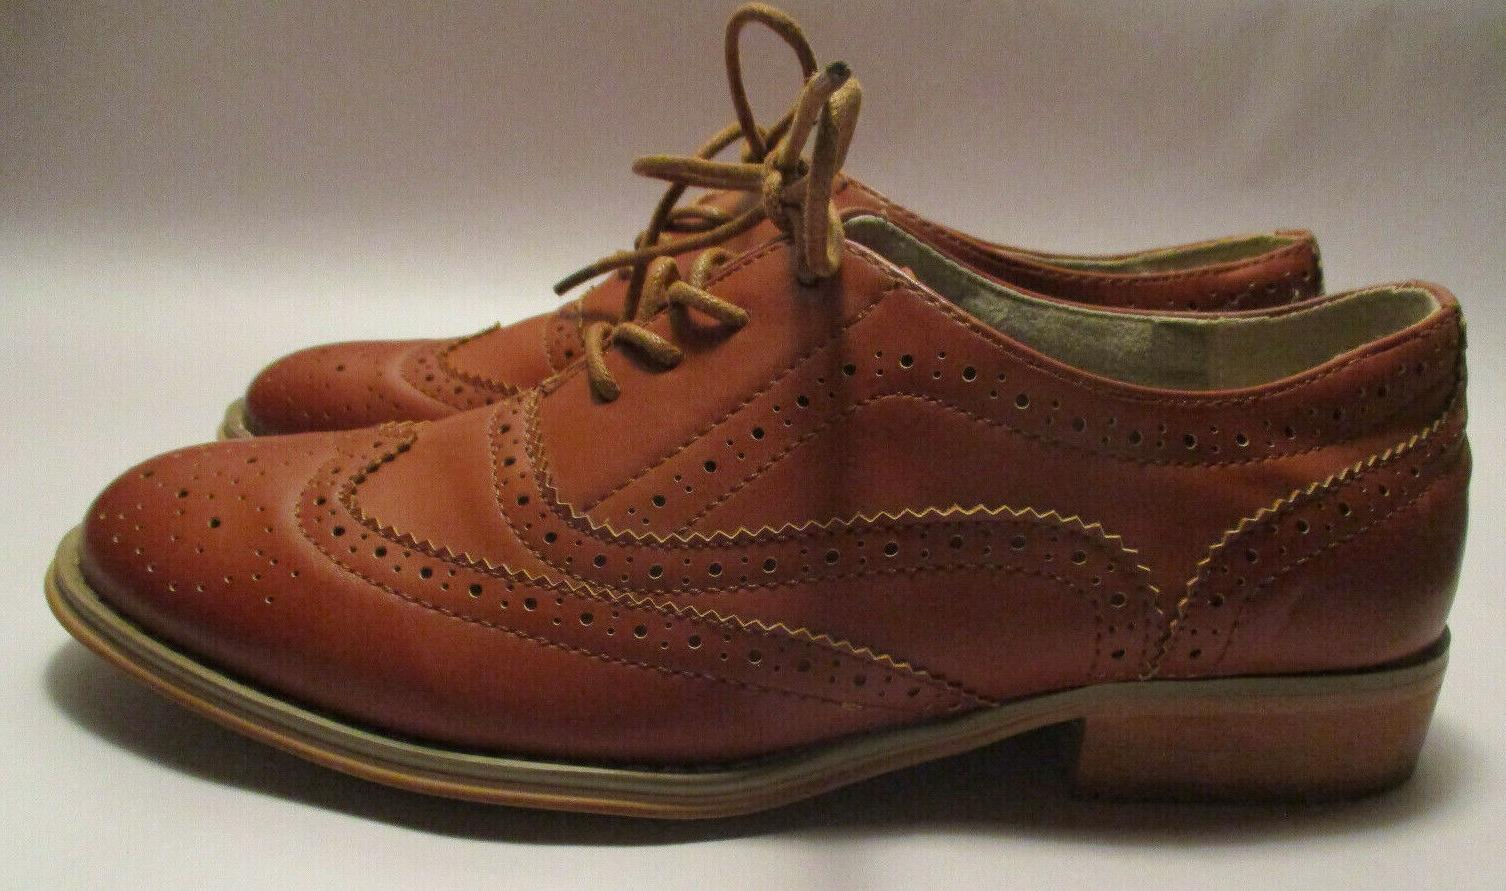 New 7 1/2M Lace Wing Tip Oxford